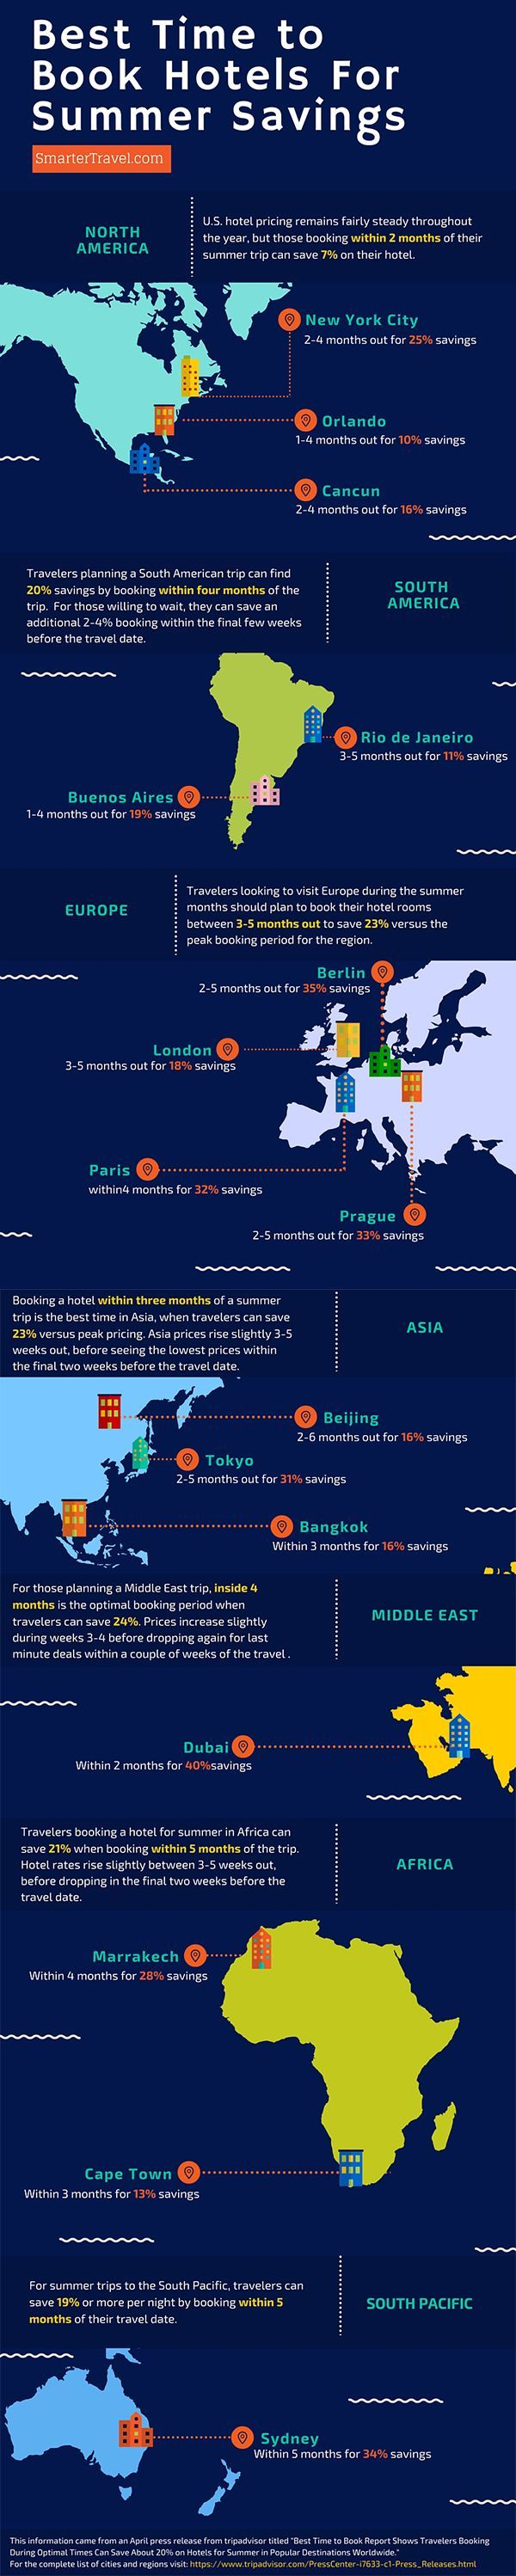 The Best Time To Book Hotels For Summer Savings Infographic Rock Paper Scissors Selling House Home Selling Tips